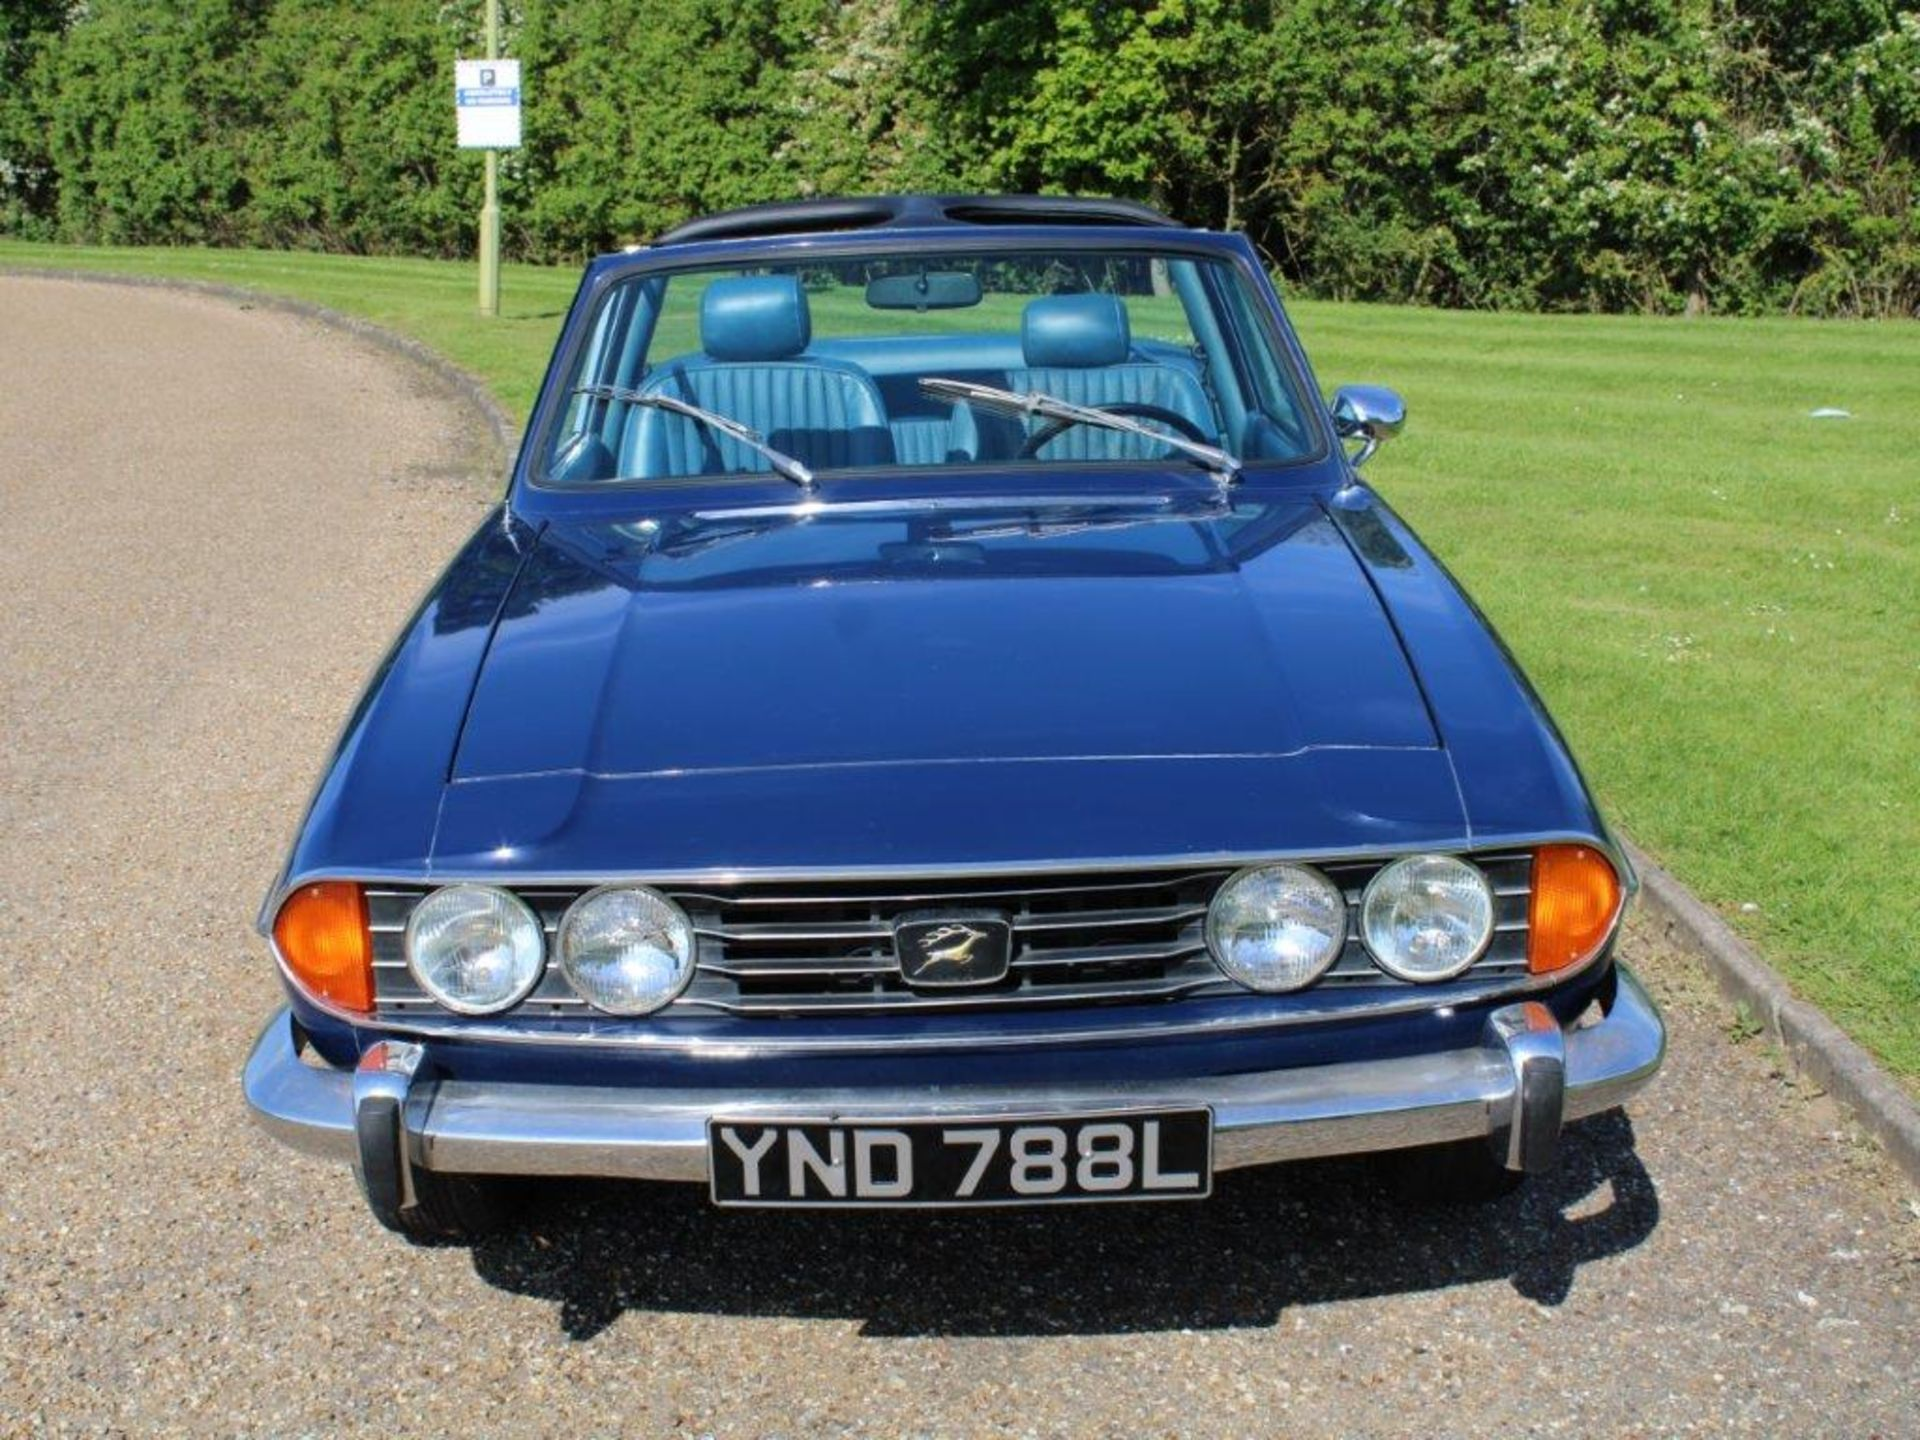 1973 Triumph Stag 3.0 LHD - Image 2 of 28